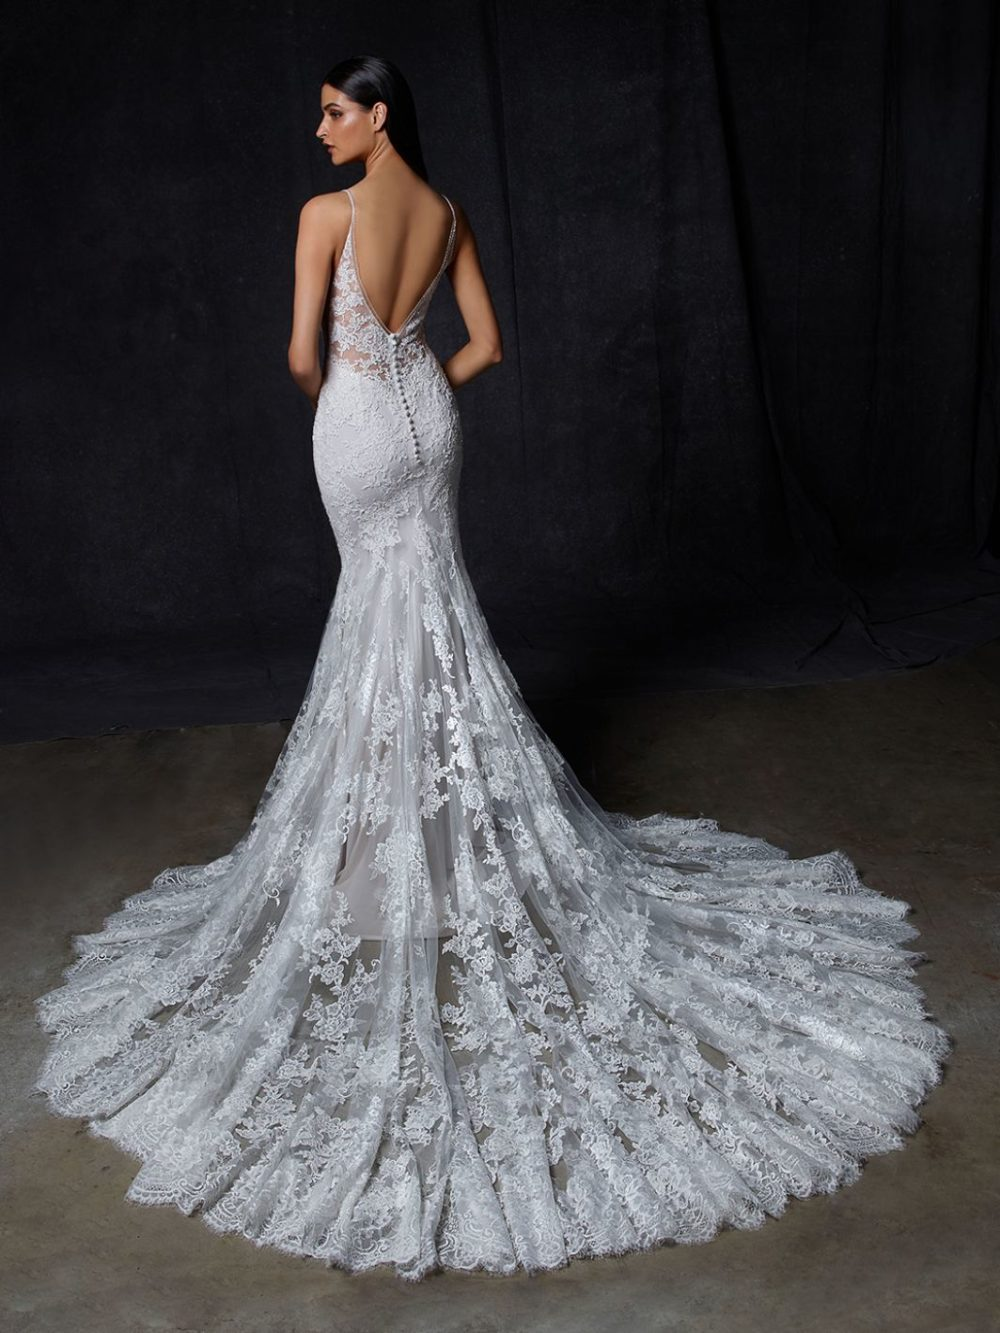 Onora by Enzoani Wedding gown dress back